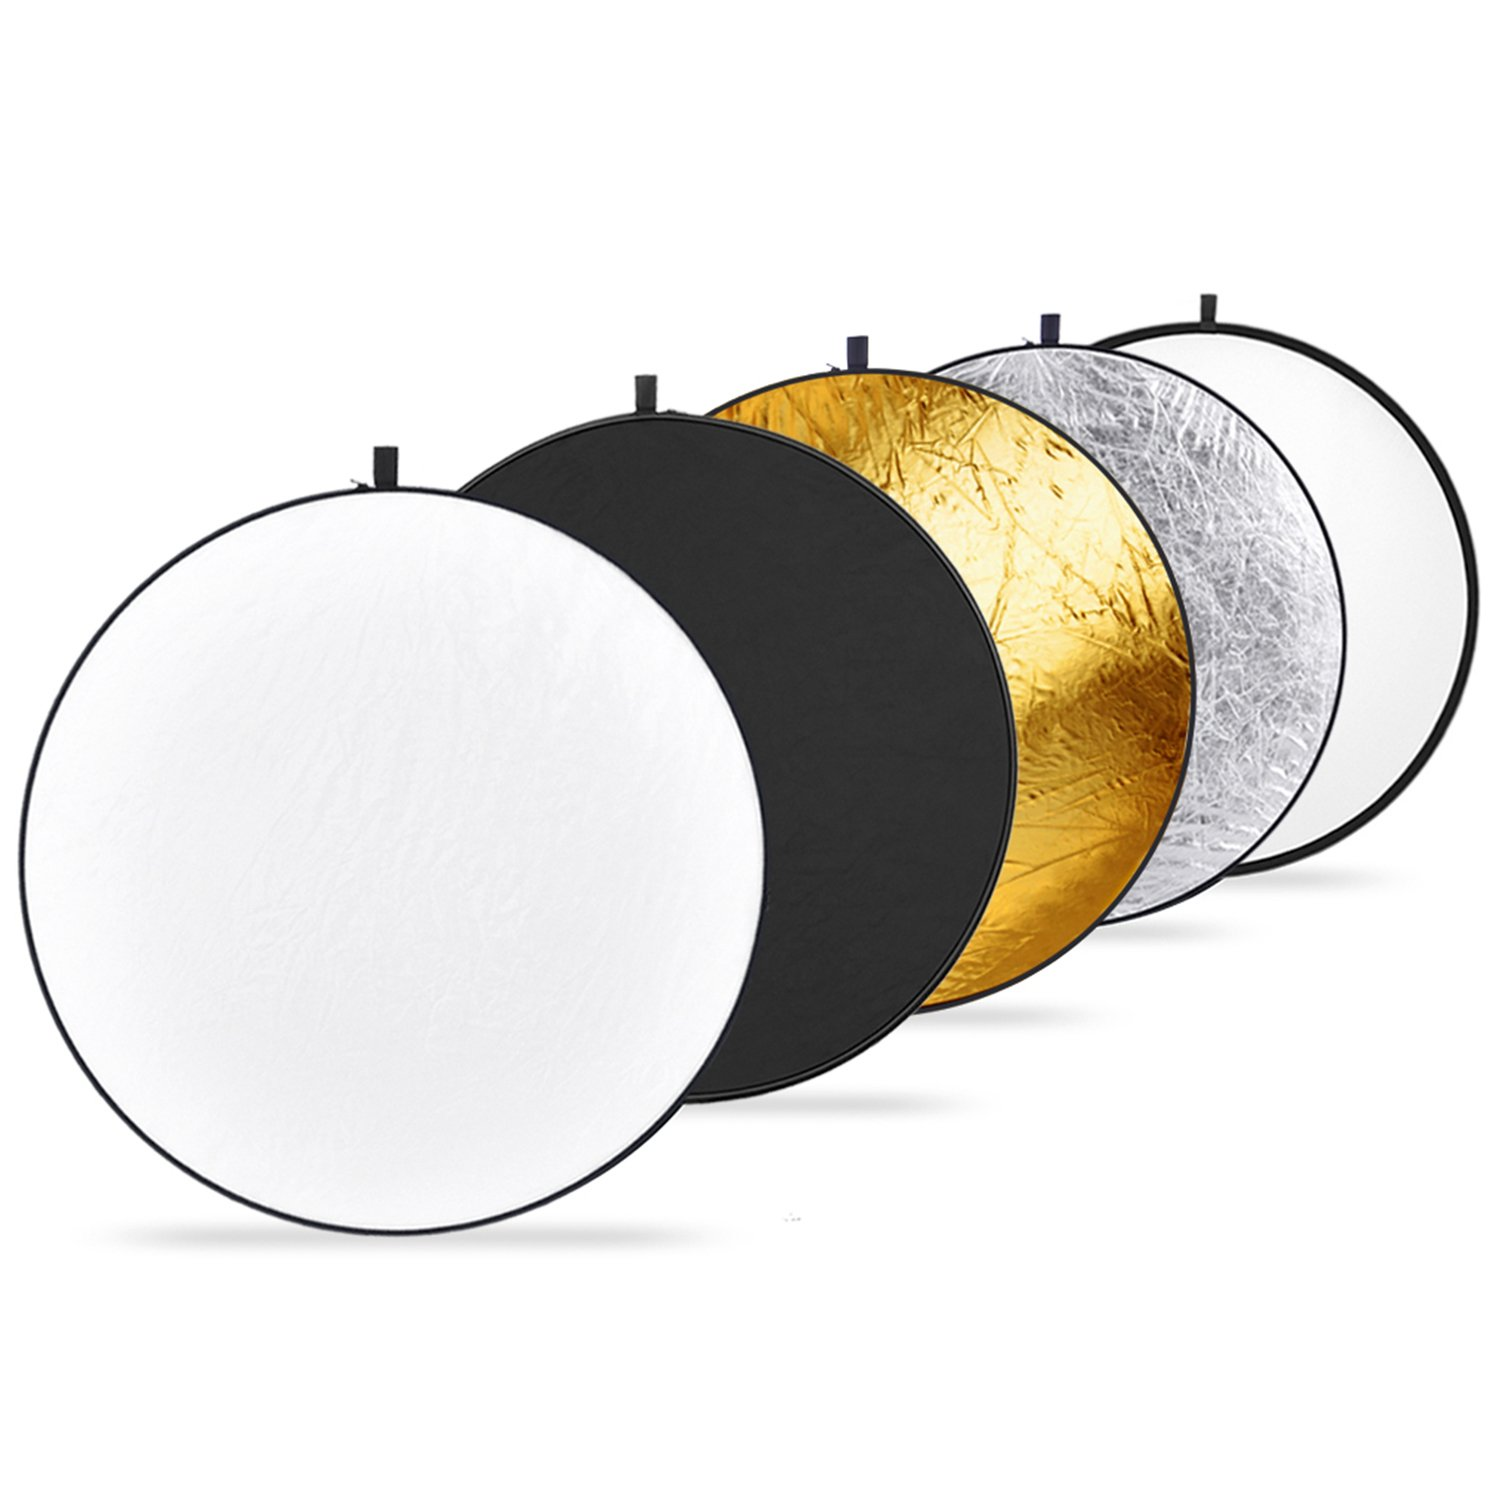 Neewer 43-inch / 110cm 5-in-1 Collapsible Multi-Disc Light Reflector with Bag - Translucent, Silver, Gold, White and Black by Neewer